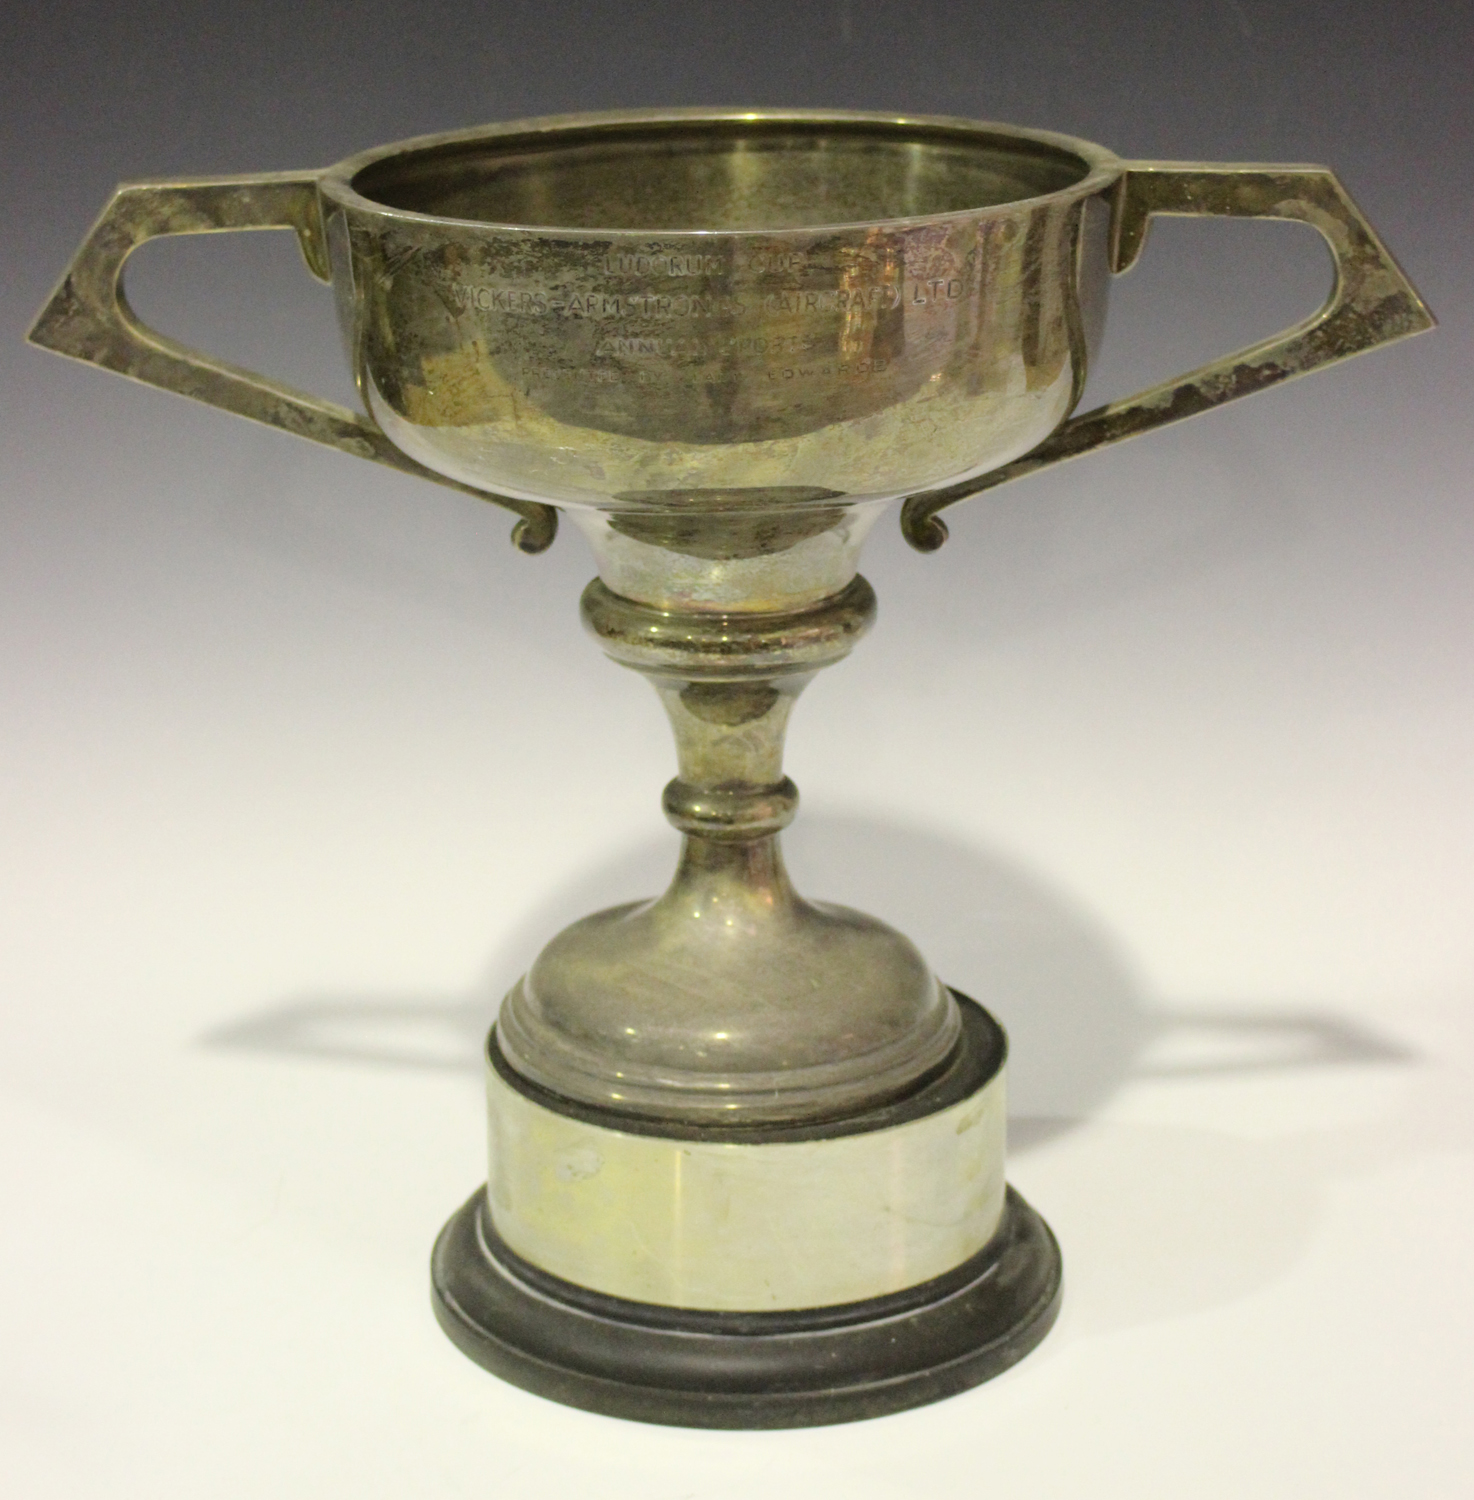 Lot 469 - A large Elizabeth II two-handled silver trophy cup, the ogee bowl flanked by angular handles, raised